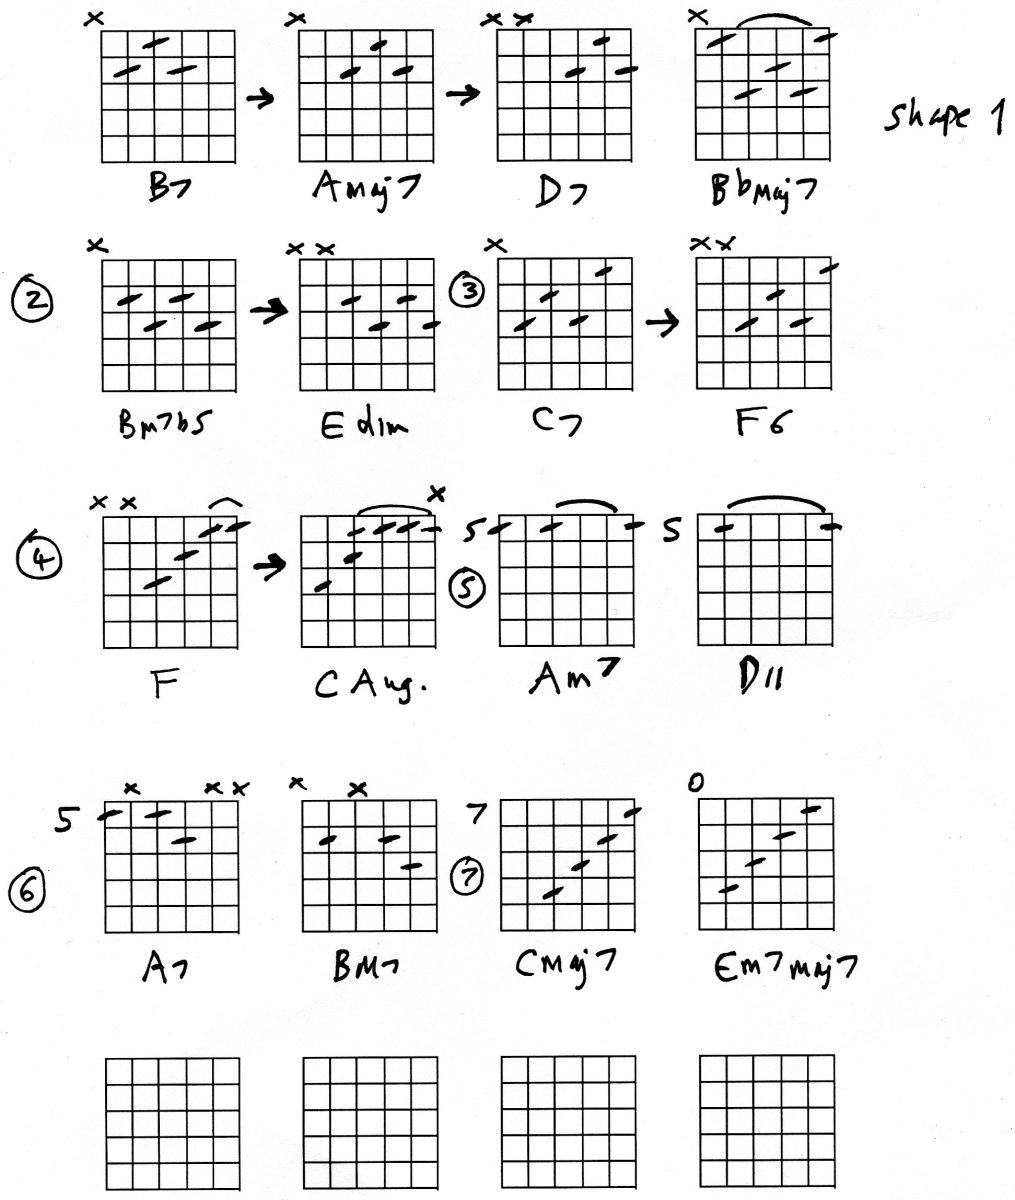 Guitar chords - advanced